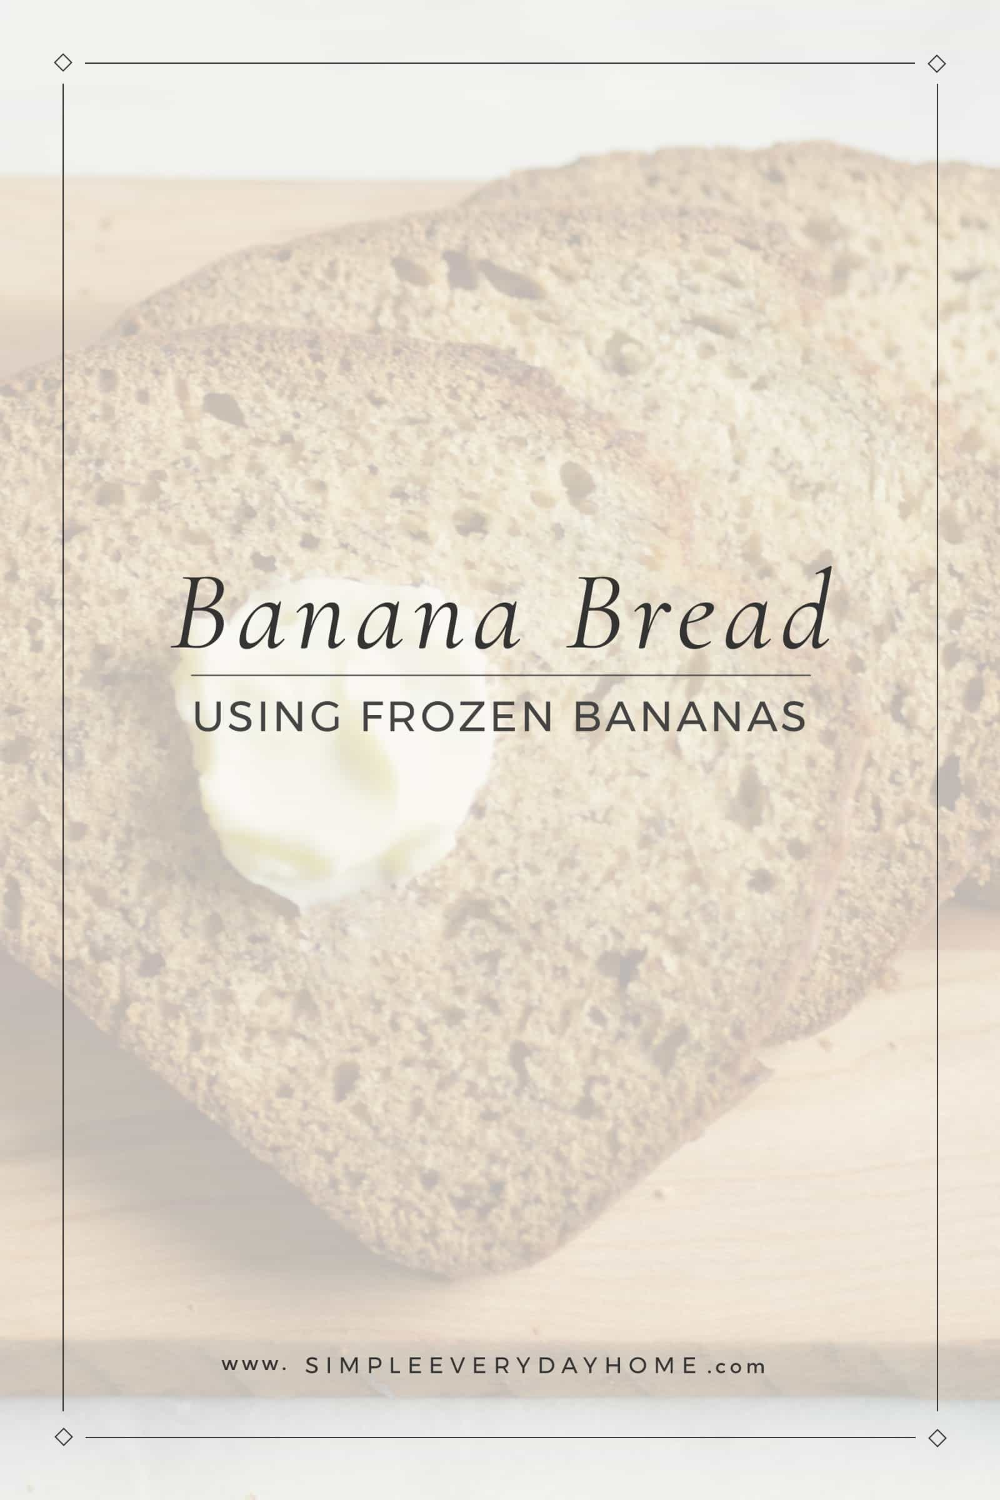 Banana Bread Recipe Using Frozen Bananas | Easy and Delicious Recipe